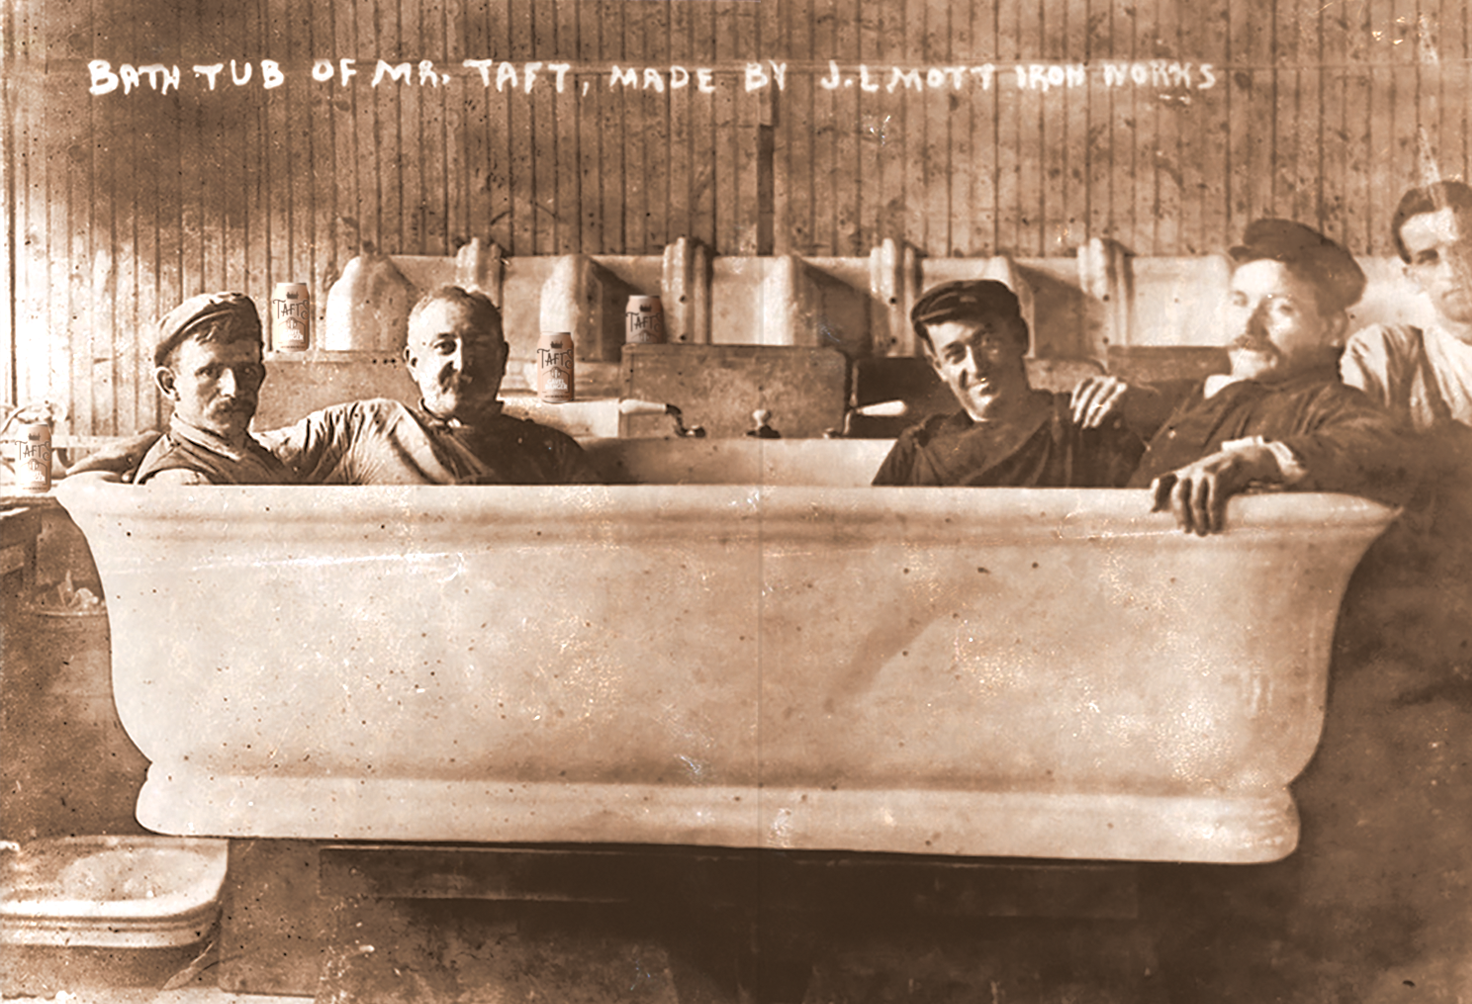 Rub a Dub Dub, a Tub for Big Lub  A 7-foot, 41-inch wide tub was installed in the White House after Taft's 1908 election win. It weighed a ton – literally.